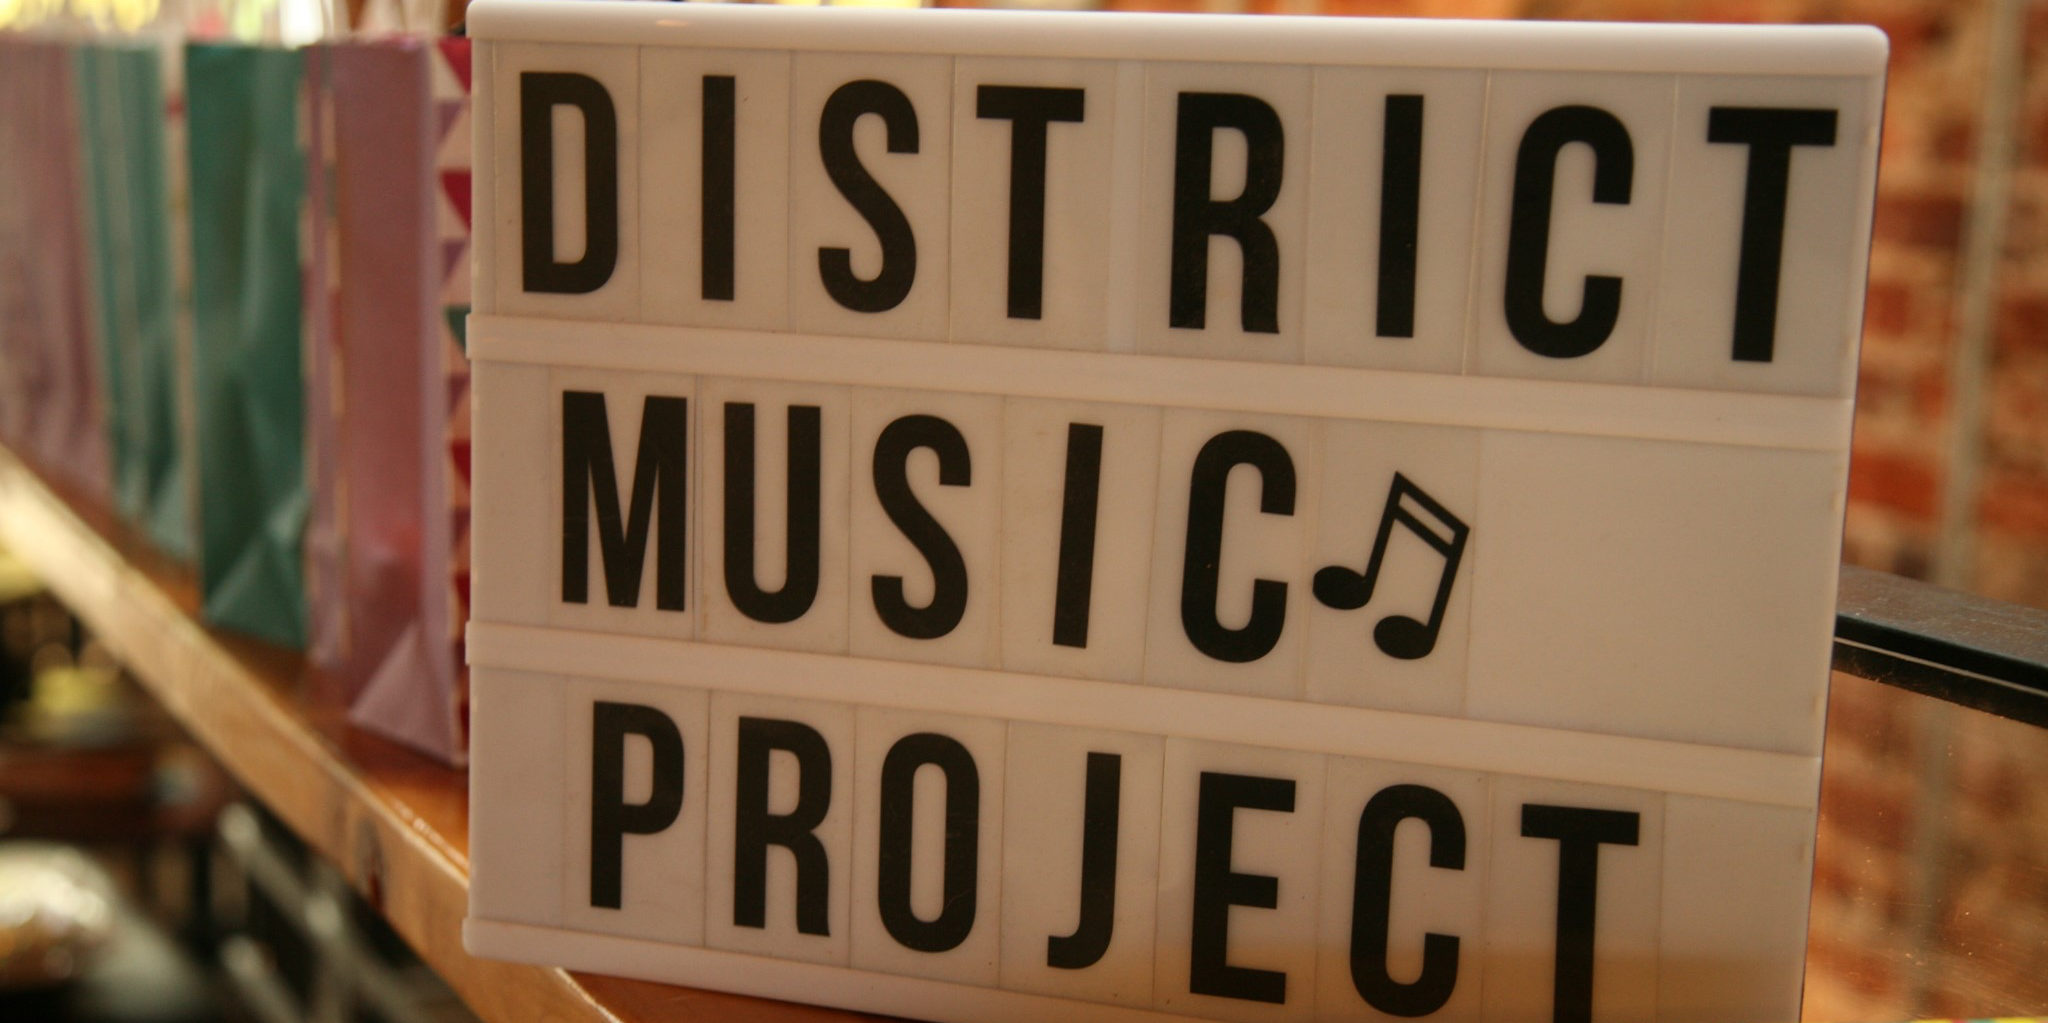 District Music Project